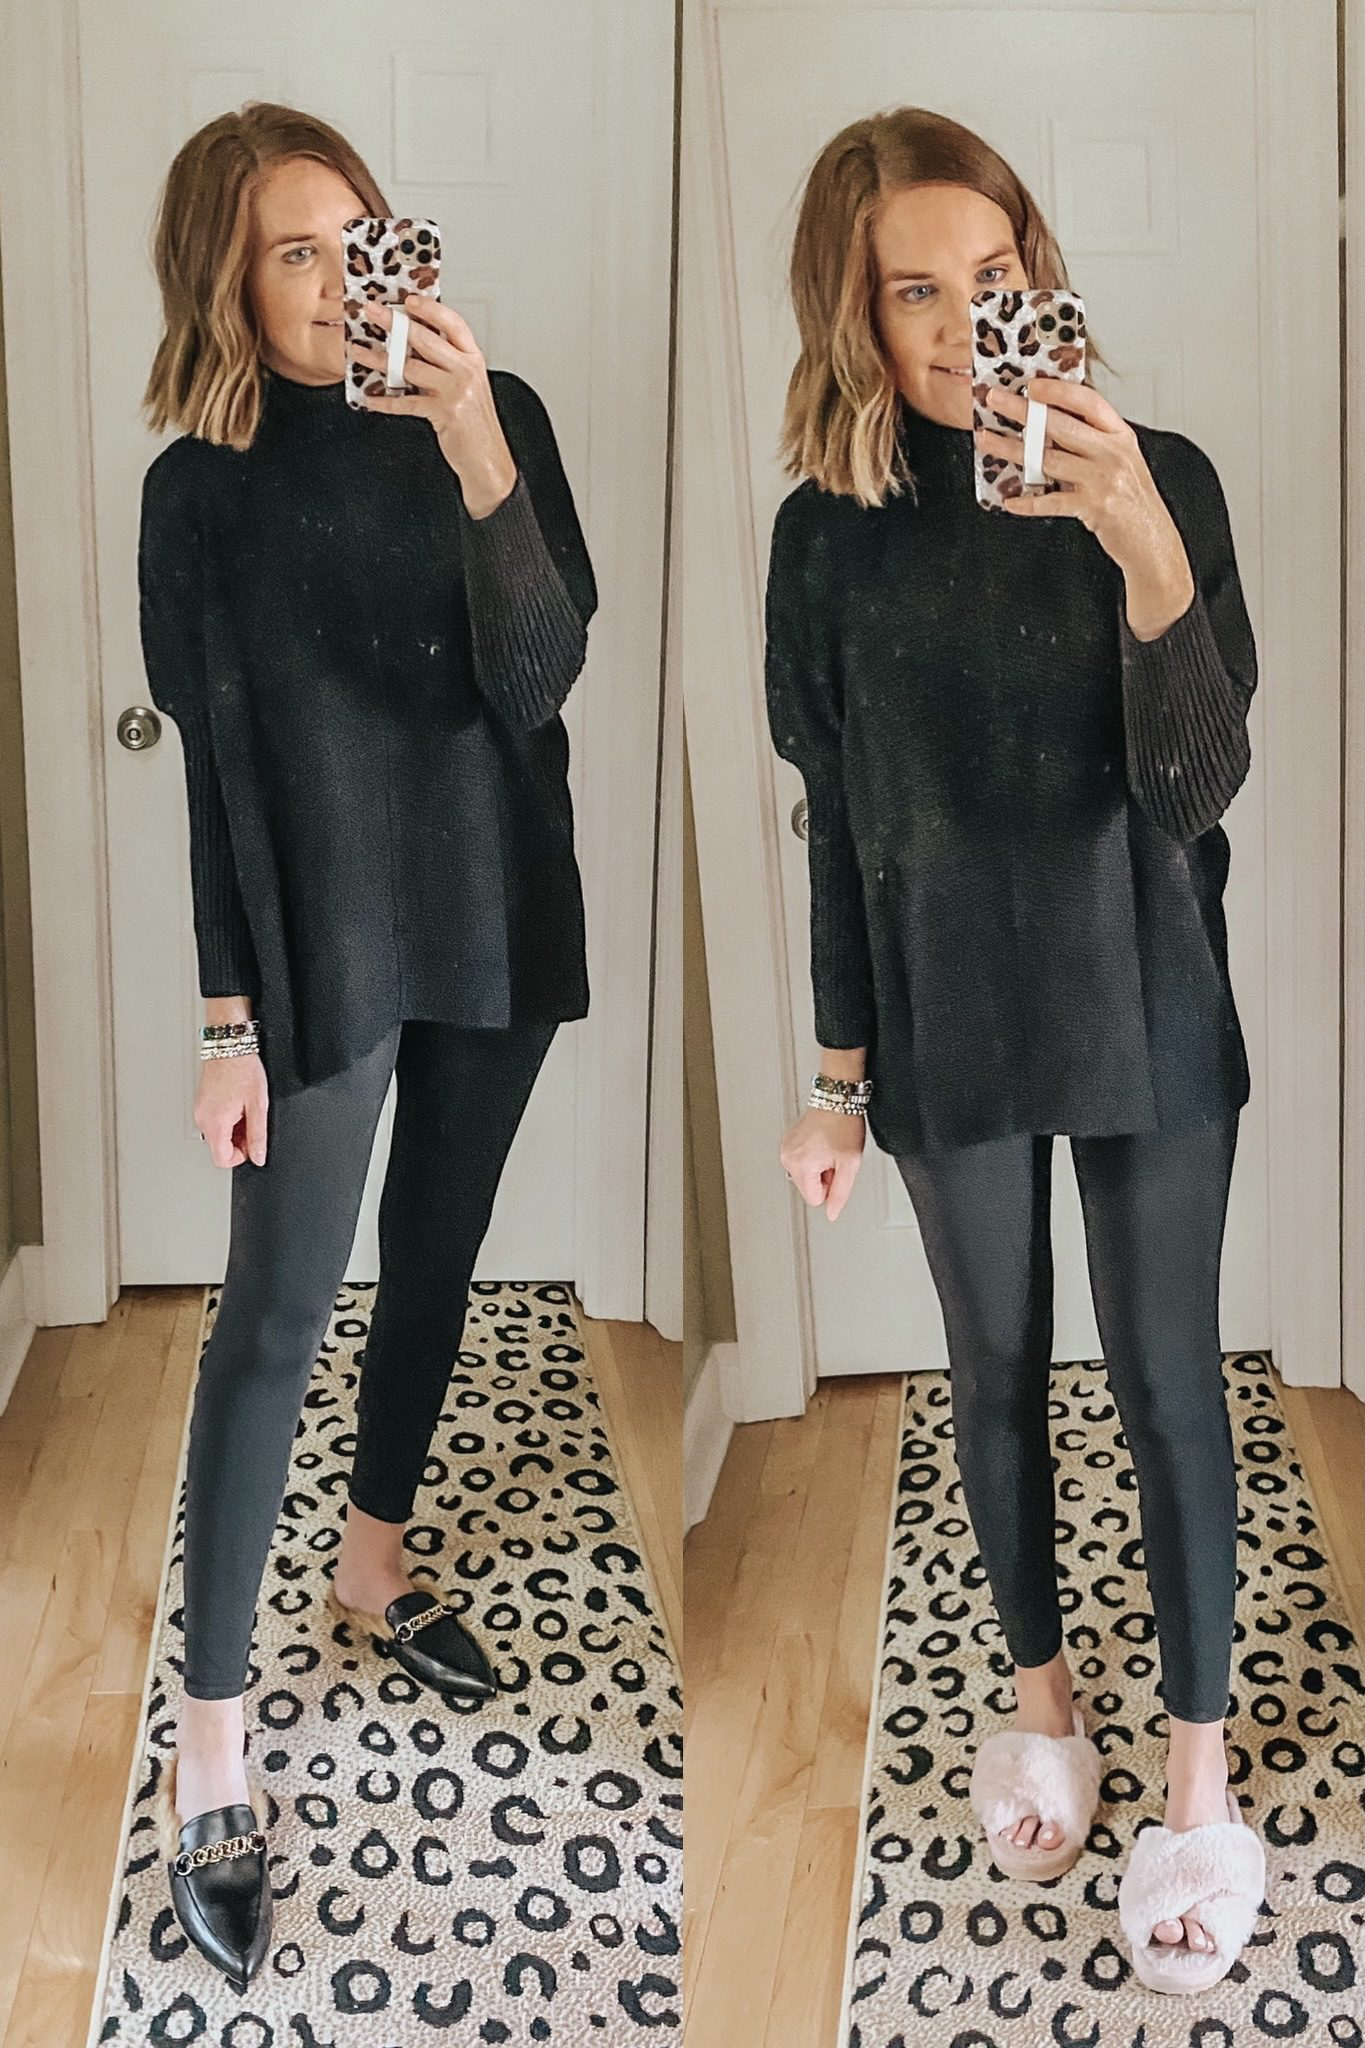 the best Amazon sweater, Free People dupe, slouchy sweater, turtleneck sweater, Lululemon align leggings dupes, casual holiday outfit idea